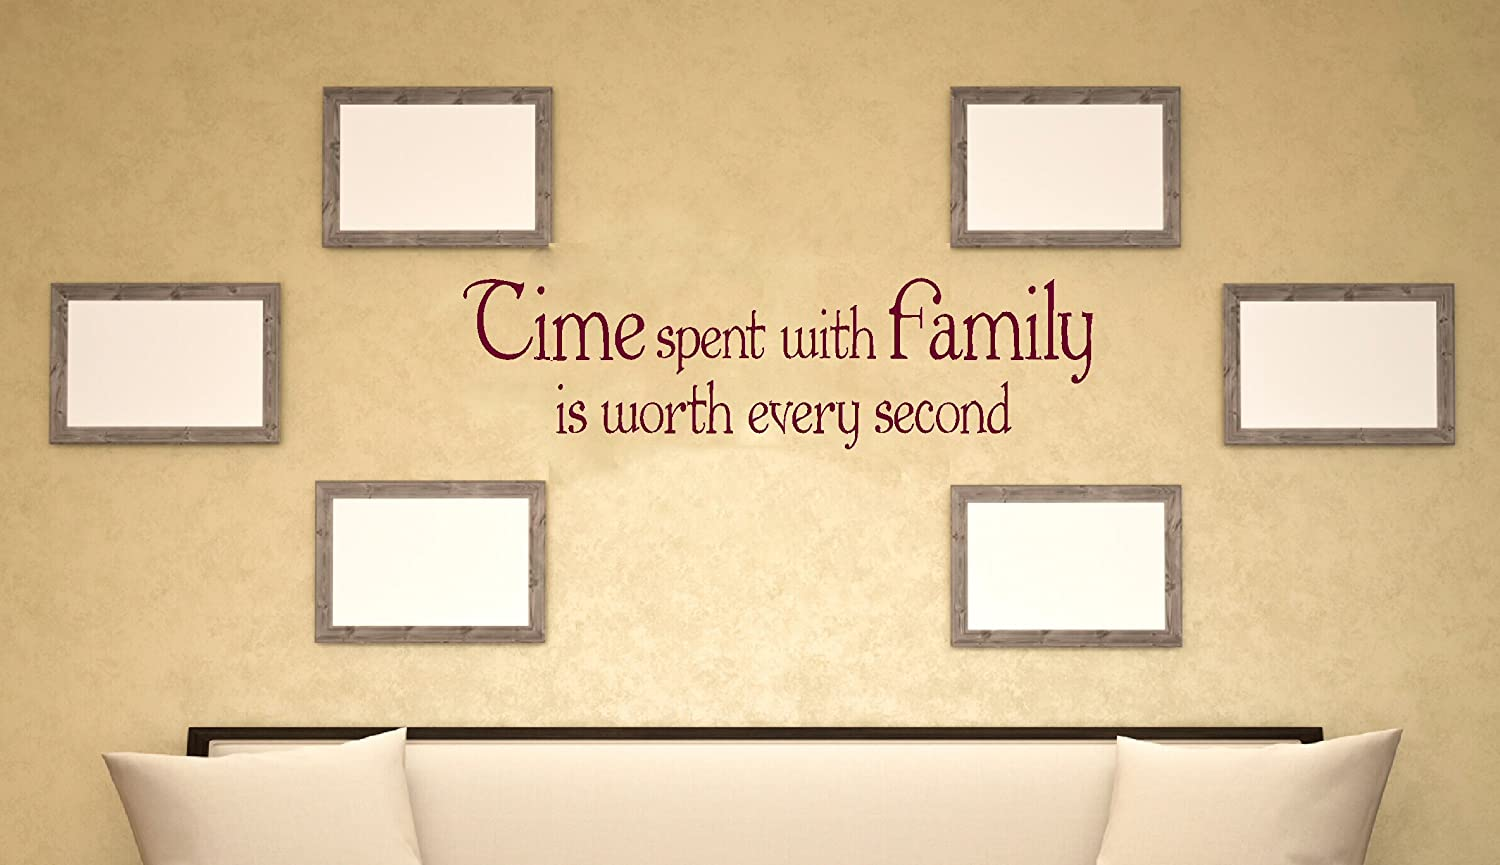 Wall Decor Plus More WDPM3294 Time Spent With Family Worth Every Second Vinyl Sticker Wall Decal Saying Quote Lettering 36 x 10-Inch Burgundy